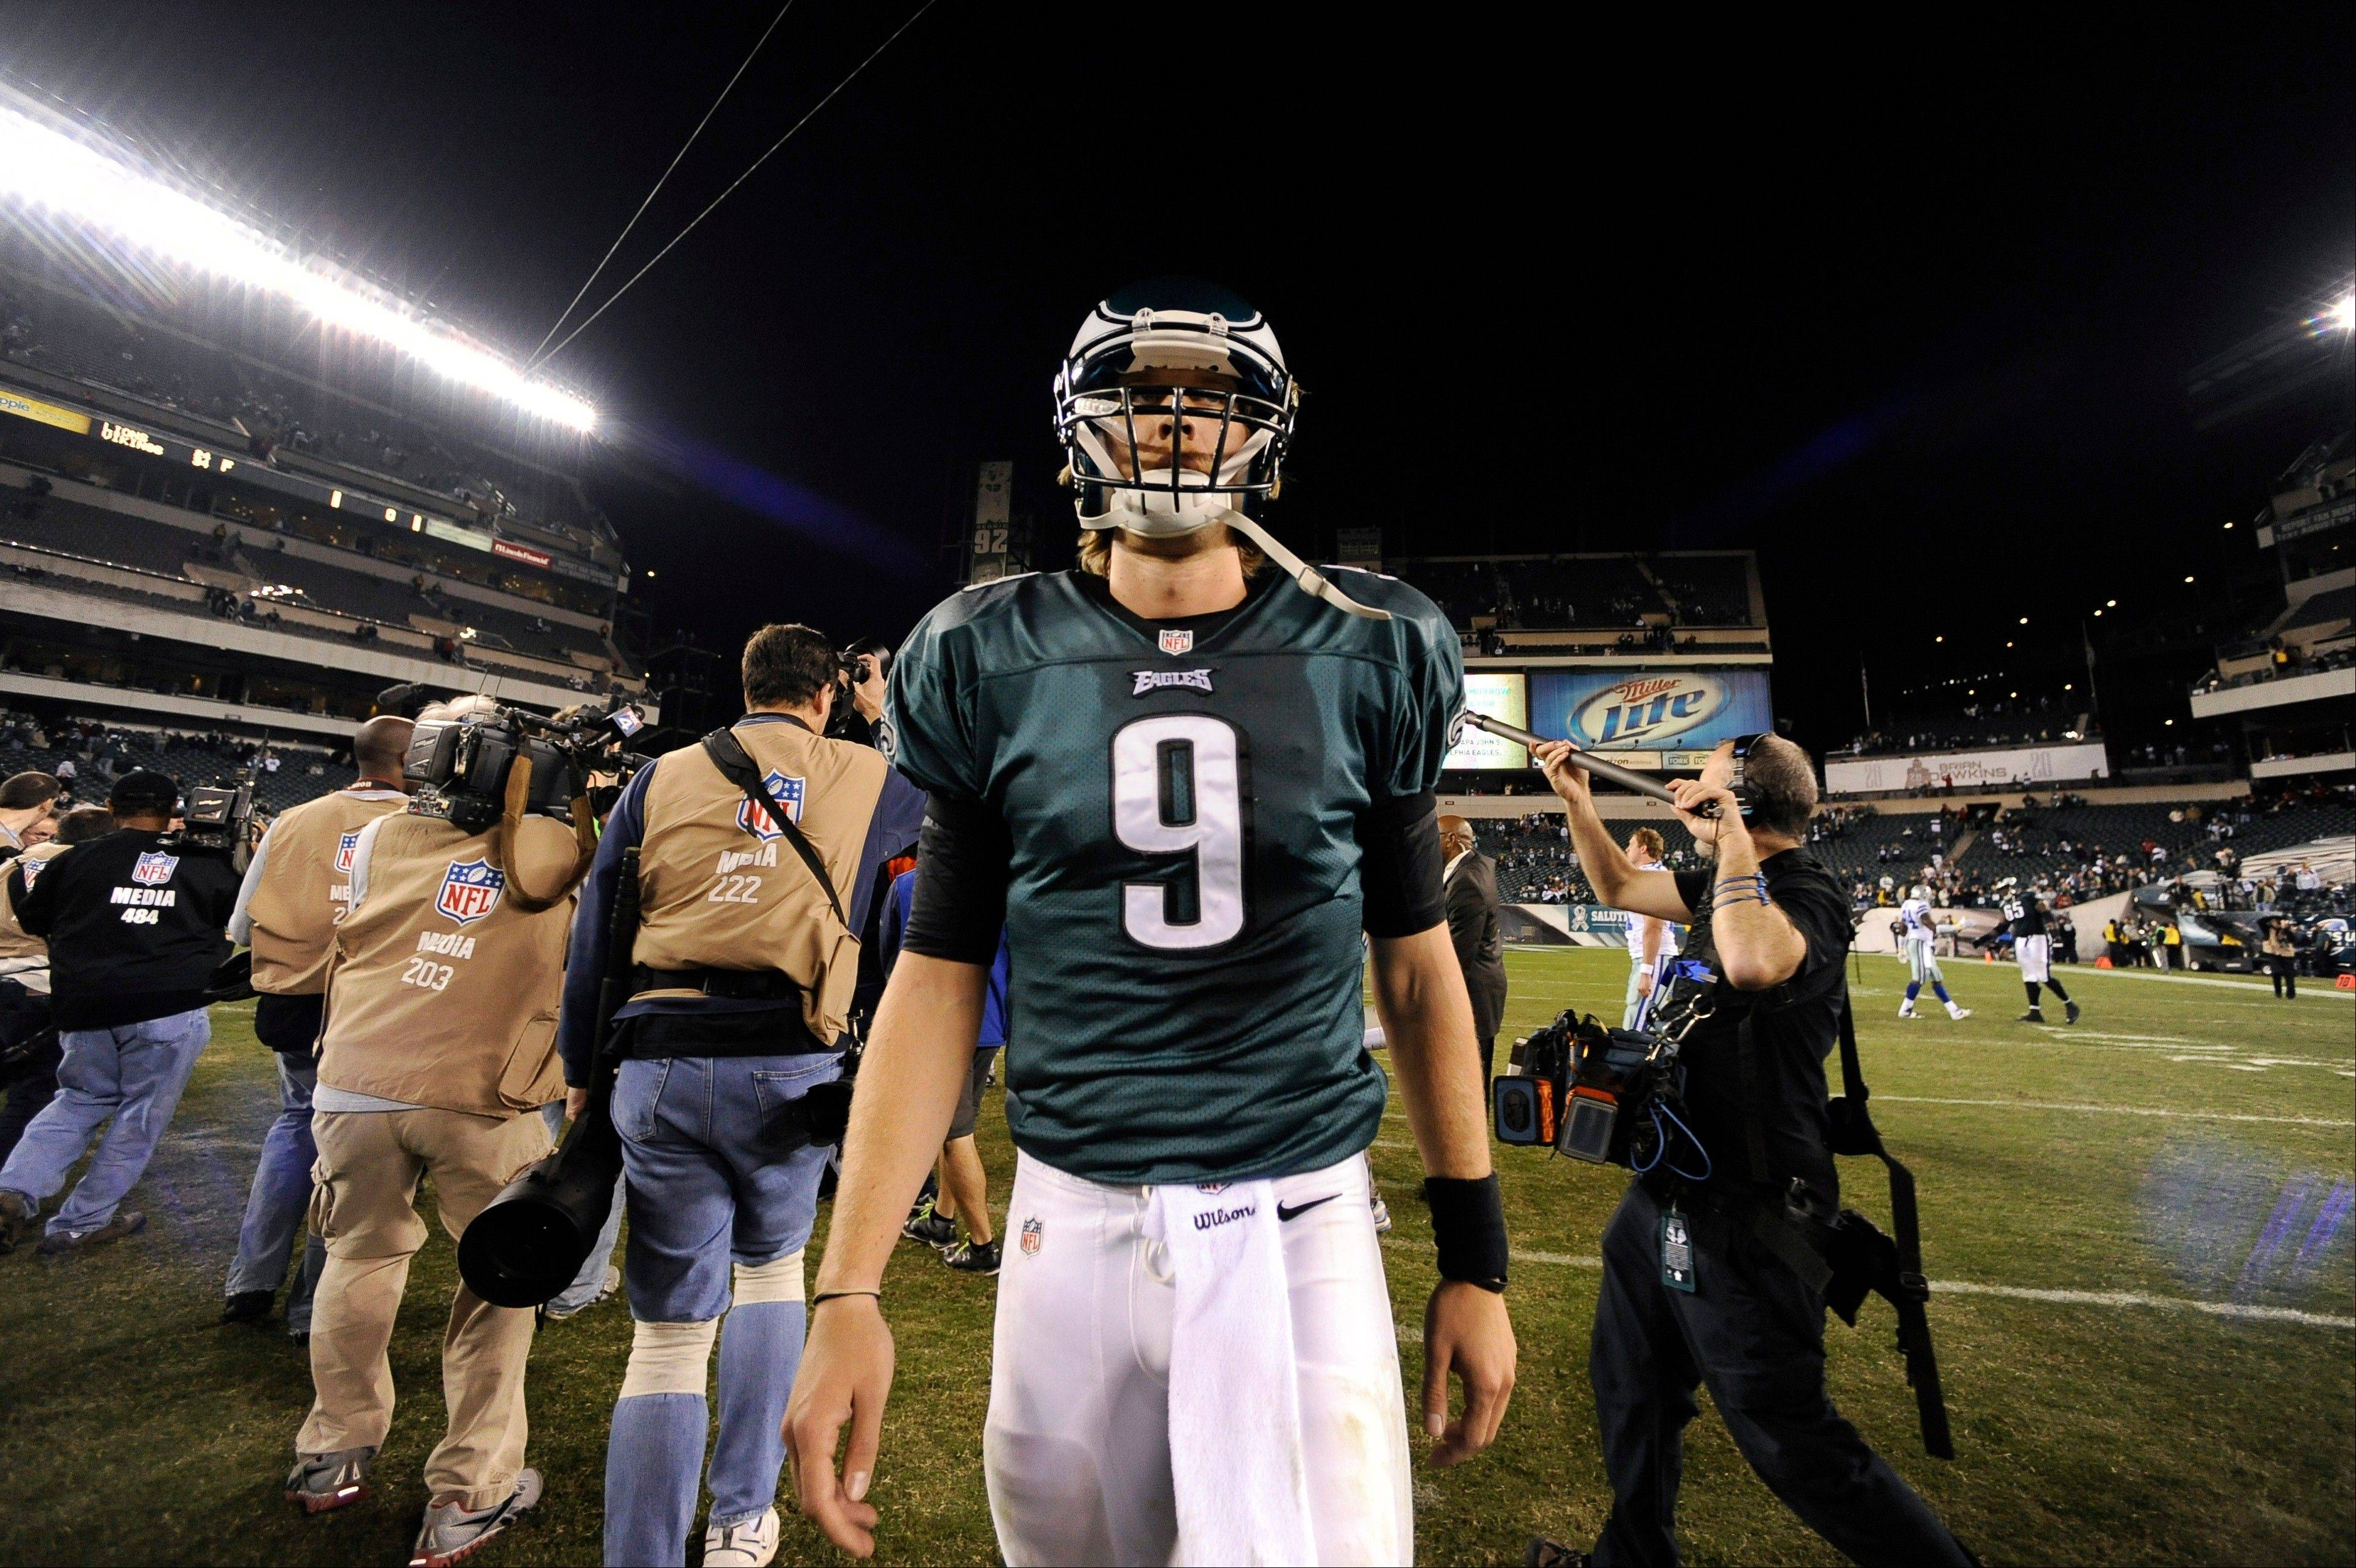 Philadelphia Eagles quarterback Nick Foles walks off the field Sunday after playing against the Dallas Cowboys in Philadelphia. Dallas won 38-23.